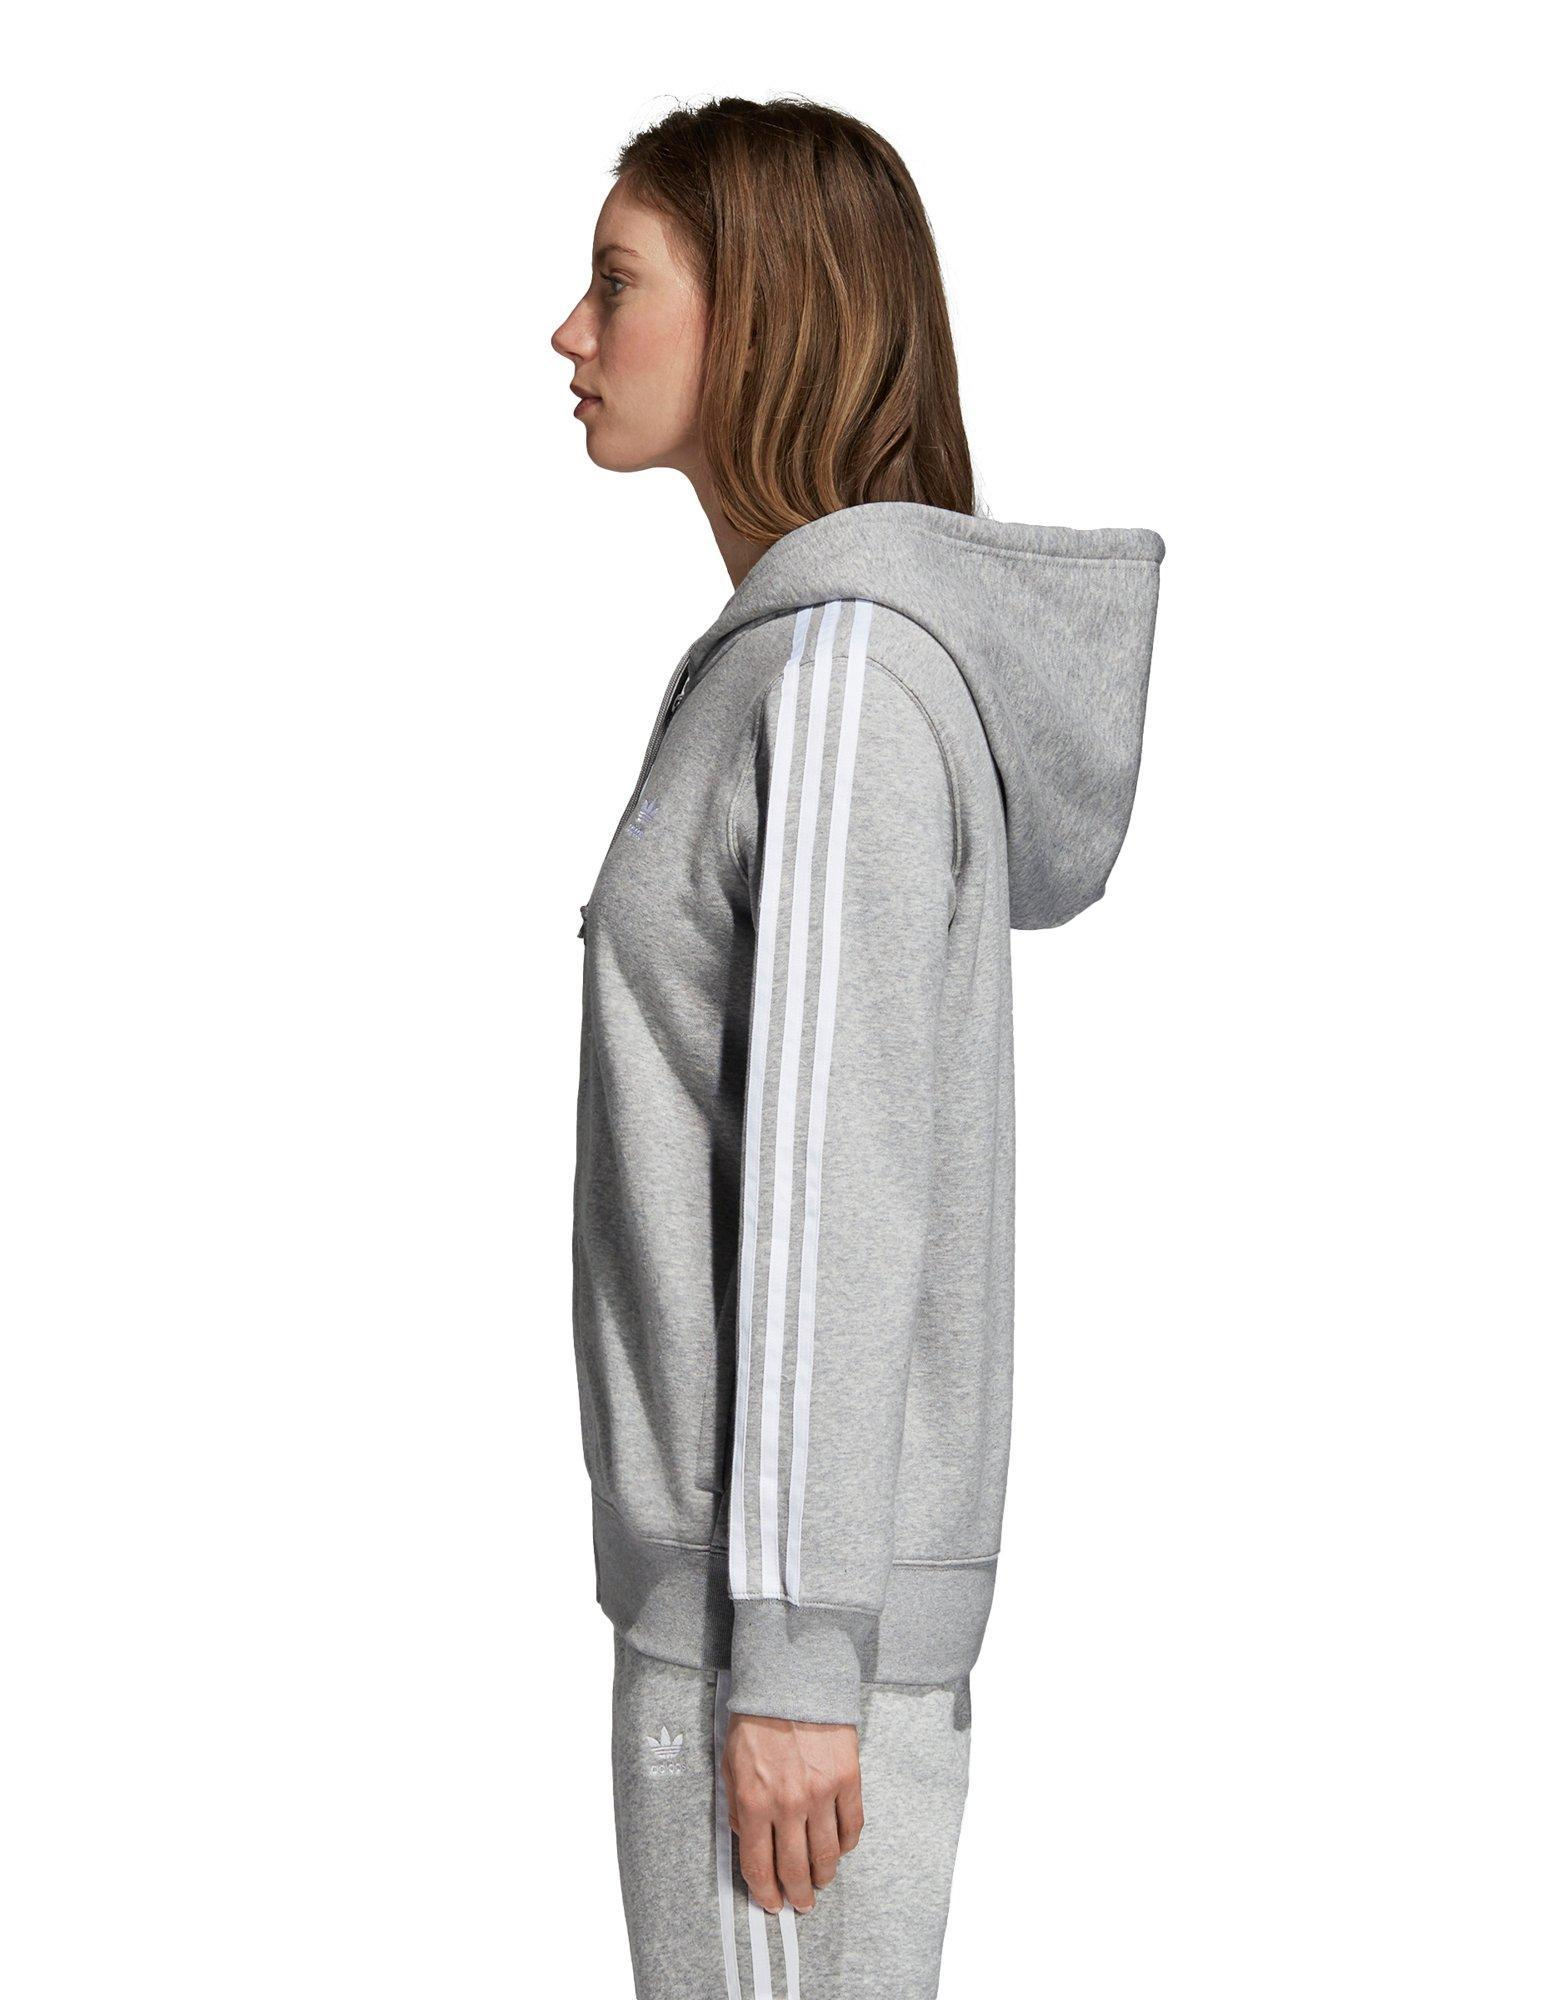 23a07be92b4b Lyst - Adidas 3-stripes Zip Hoodie in Gray